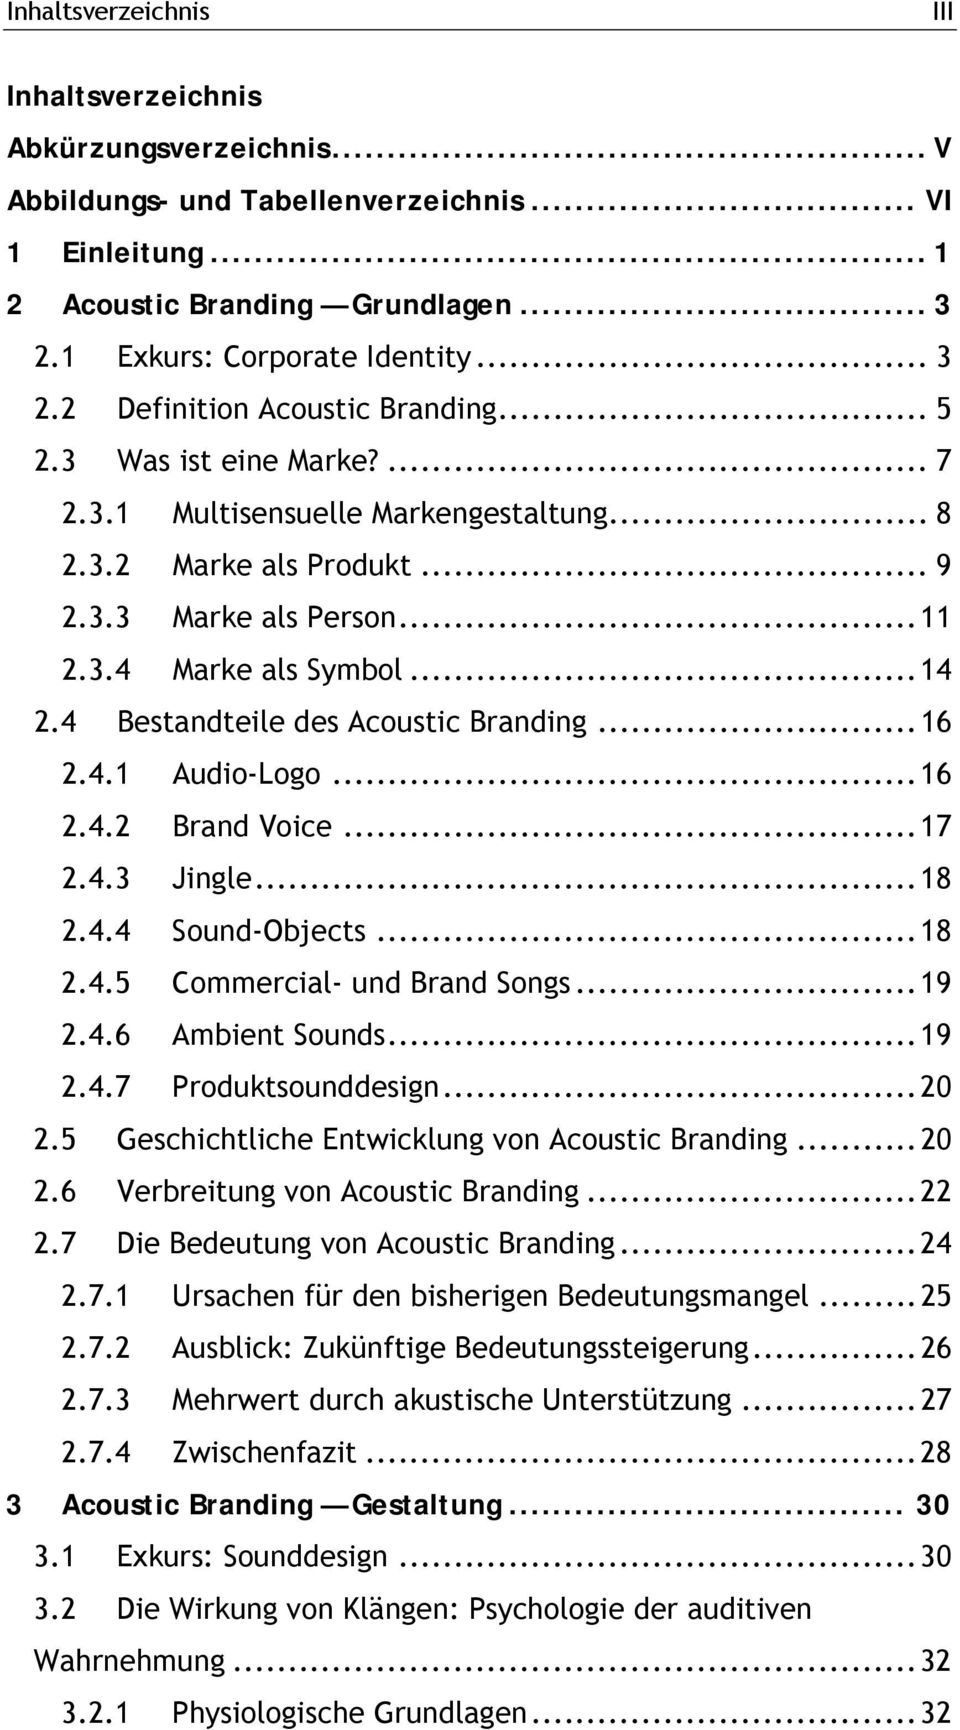 4 Bestandteile des Acoustic Branding...16 2.4.1 Audio-Logo...16 2.4.2 Brand Voice...17 2.4.3 Jingle...18 2.4.4 Sound-Objects...18 2.4.5 Commercial- und Brand Songs...19 2.4.6 Ambient Sounds...19 2.4.7 Produktsounddesign.